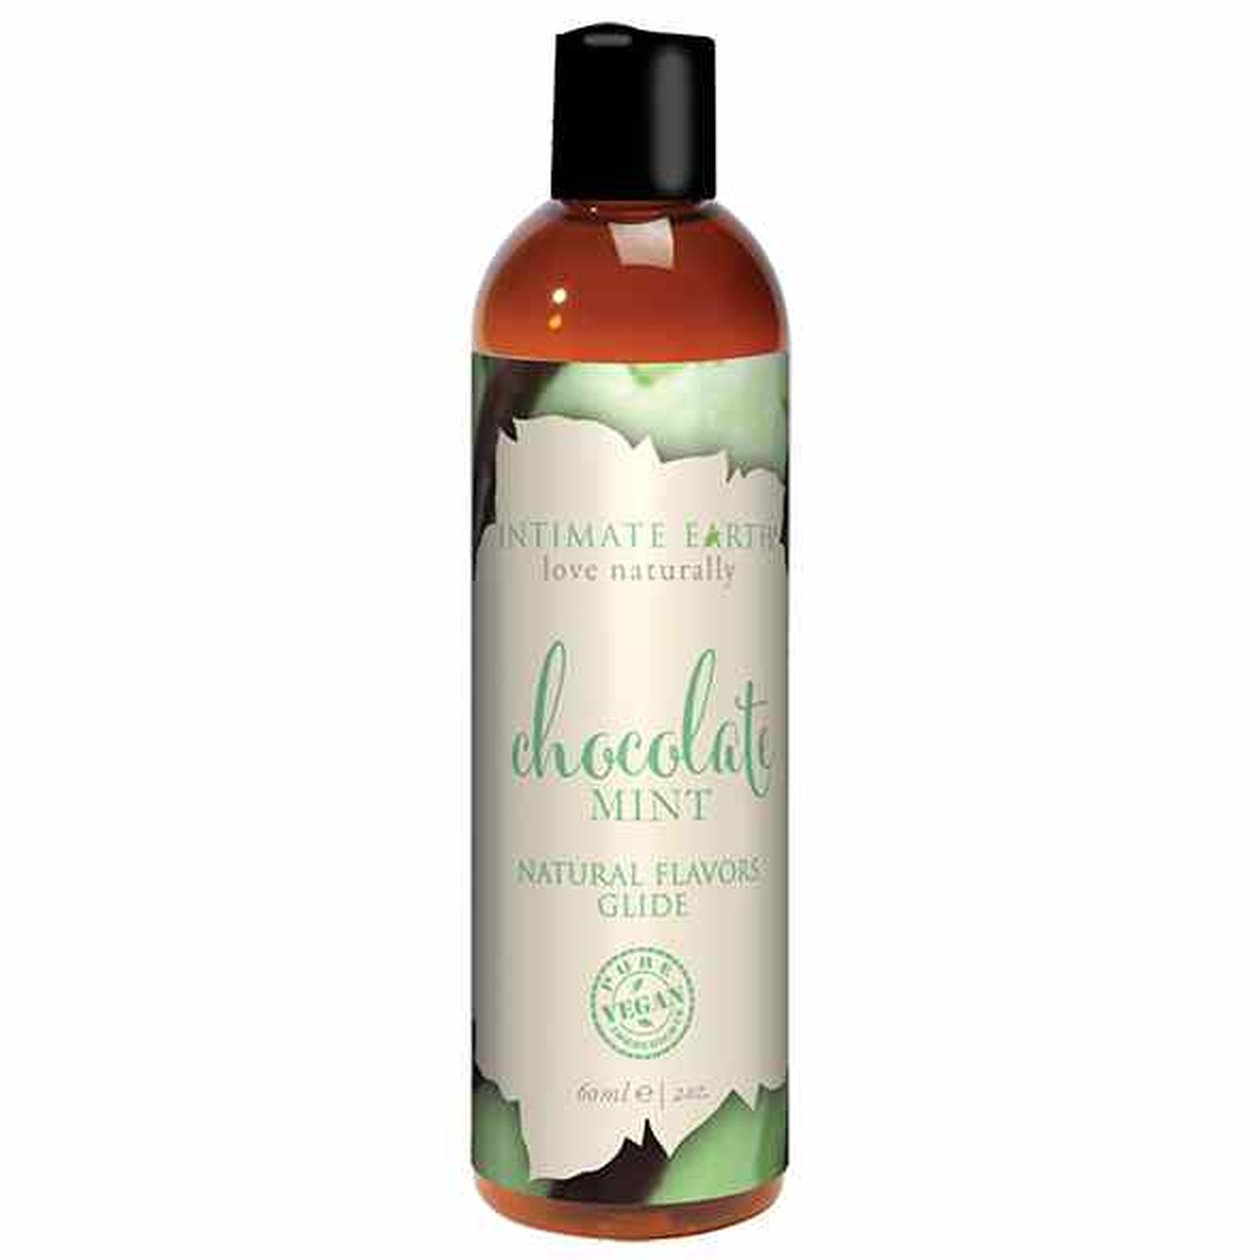 Intimate Earth - Natural Flavors Glide Chocolate Mint 60 ml